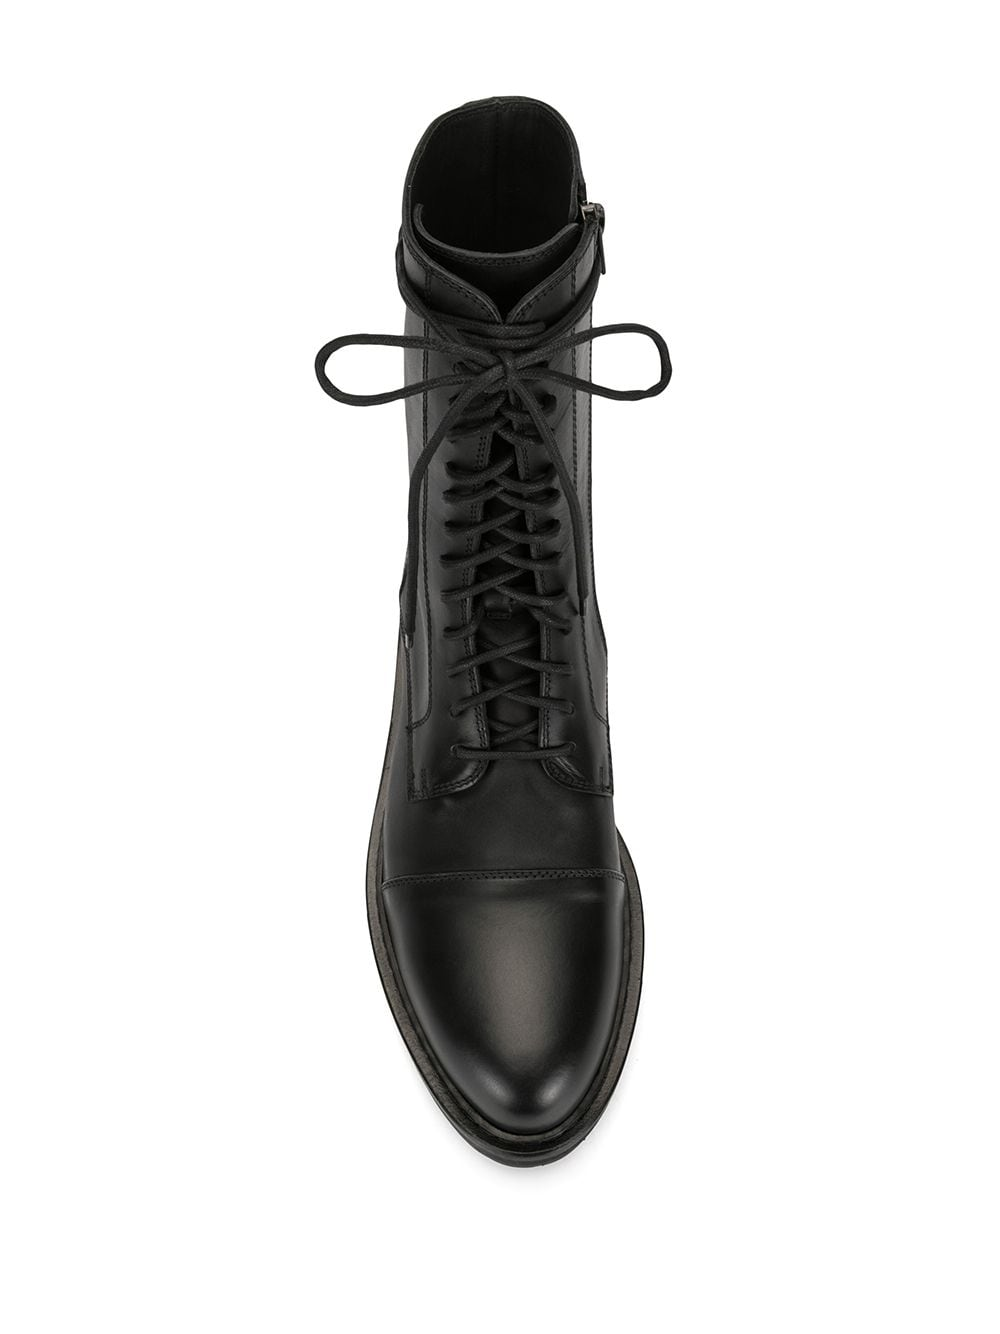 ANN DEMEULEMEESTER MEN LACE UP COMBAT BOOTS